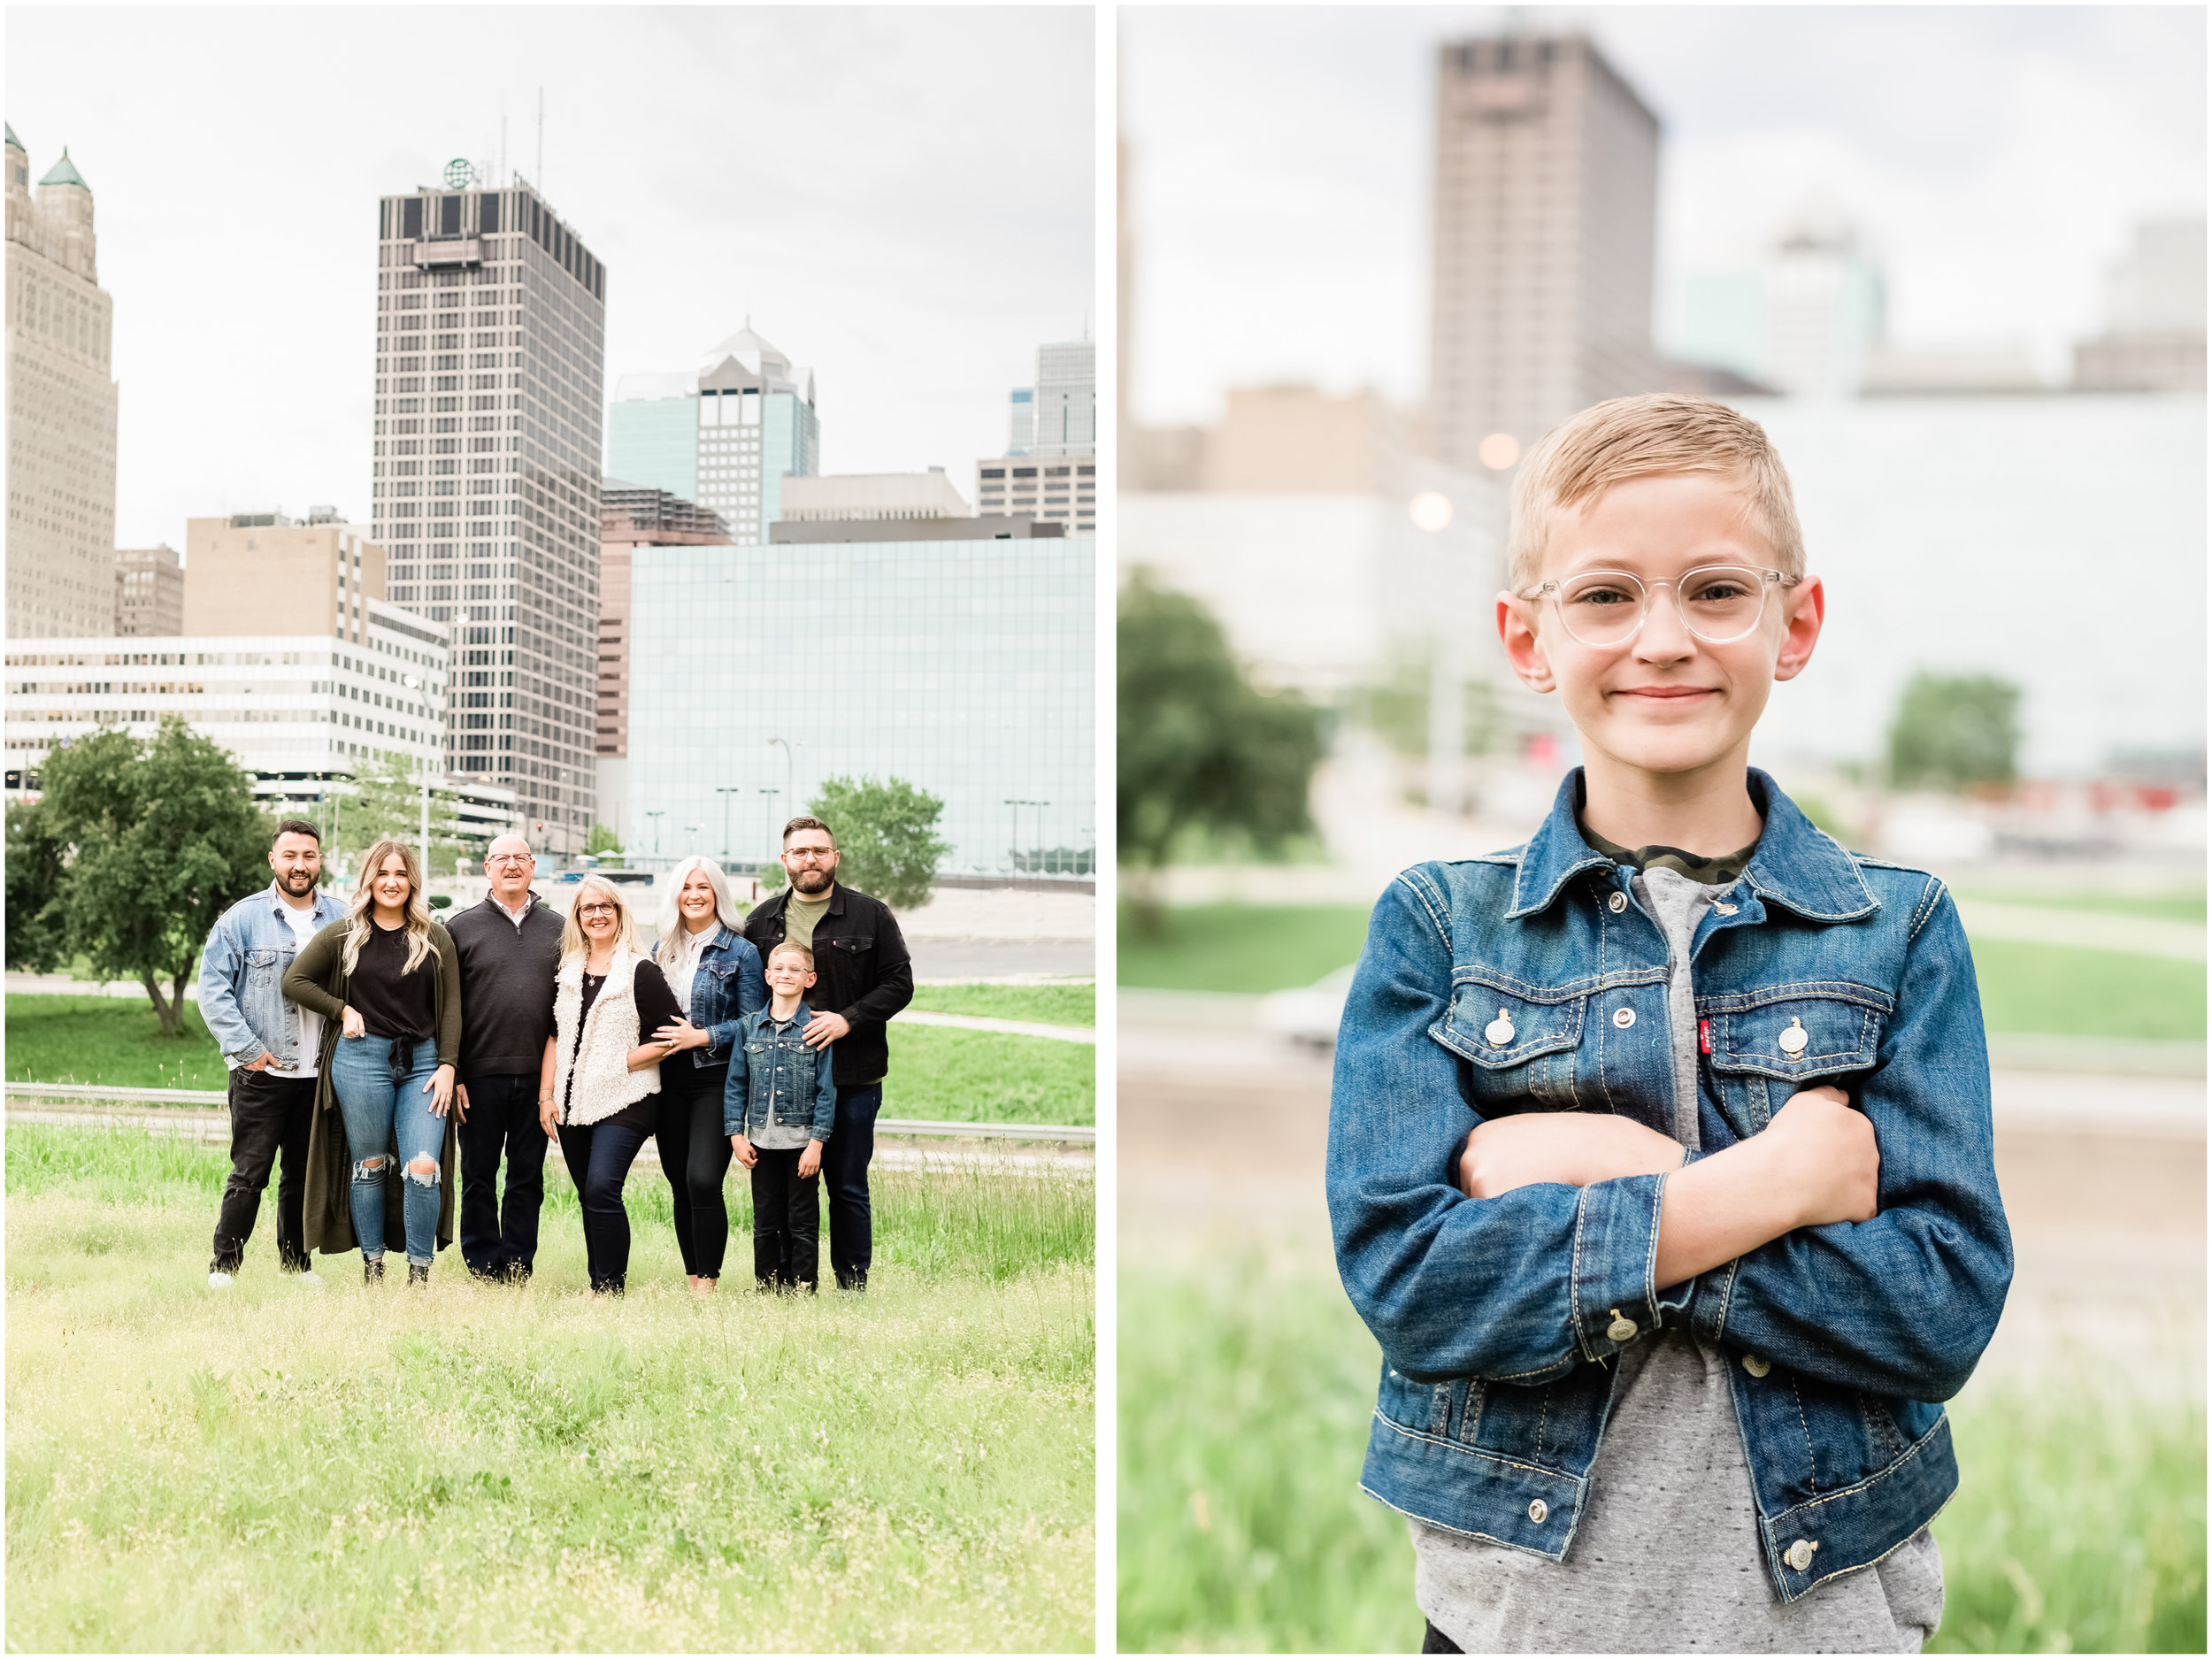 river market kc family photos 1.jpg